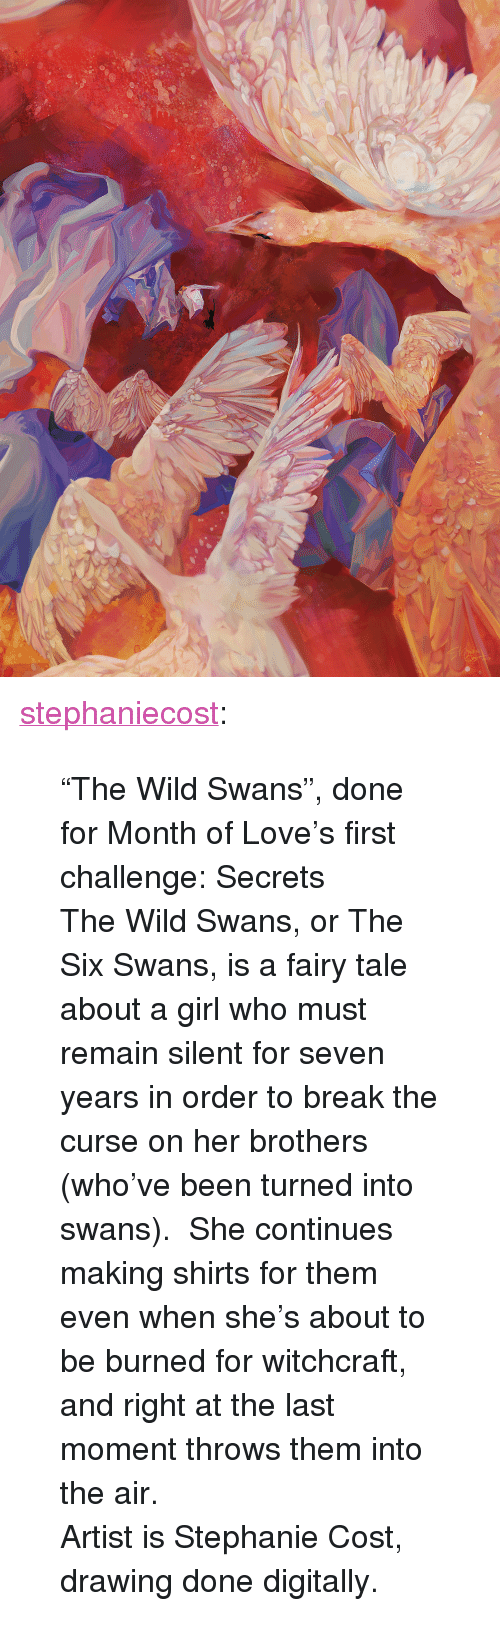 "fairy tale: <p><a href=""http://stephaniecost.tumblr.com/post/156682231812/the-wild-swans-done-for-month-of-loves-first"" class=""tumblr_blog"" target=""_blank"">stephaniecost</a>:</p><blockquote> <p>""The Wild Swans"", done for Month of Love's first challenge: Secrets<br/></p> <p>The Wild Swans, or The Six Swans, is a fairy tale about a girl who must remain silent for seven years in order to break the curse on her brothers (who've been turned into swans).  She continues making shirts for them even when she's about to be burned for witchcraft, and right at the last moment throws them into the air.</p> <p>Artist is Stephanie Cost, drawing done digitally.</p> </blockquote>"